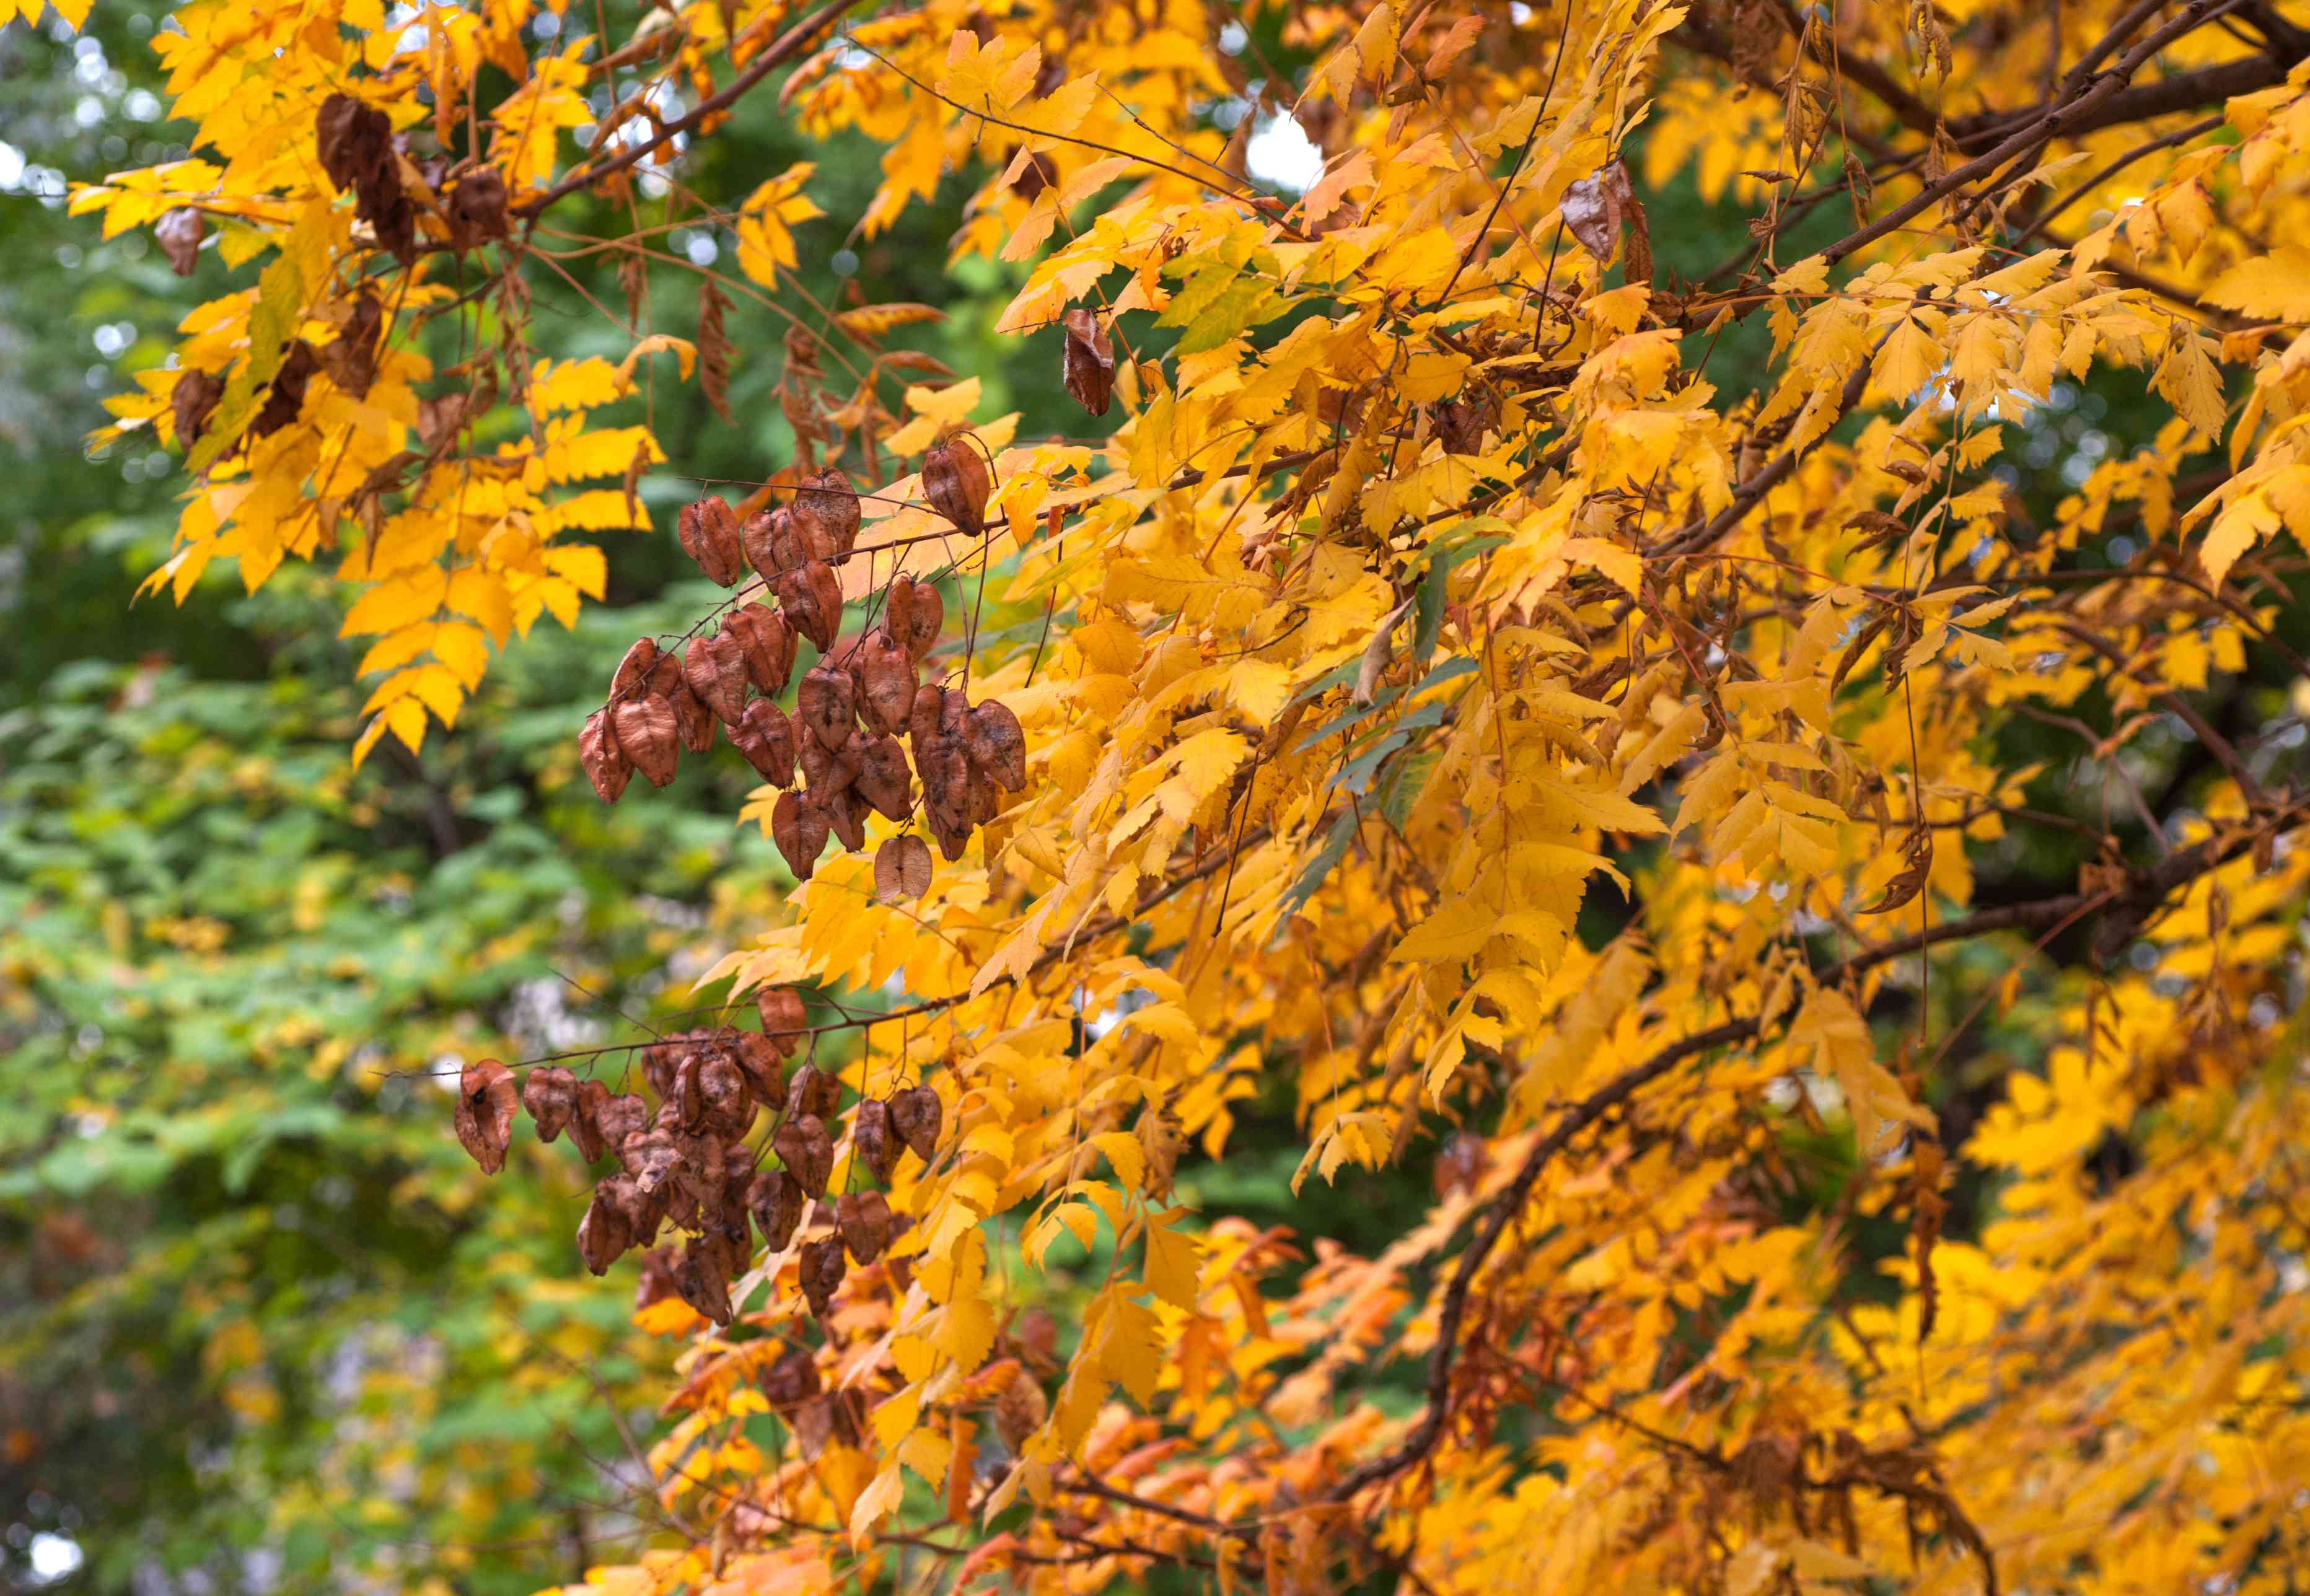 Chinese flame tree branches with golden yellow leaves and brown lantern-like seed capsules